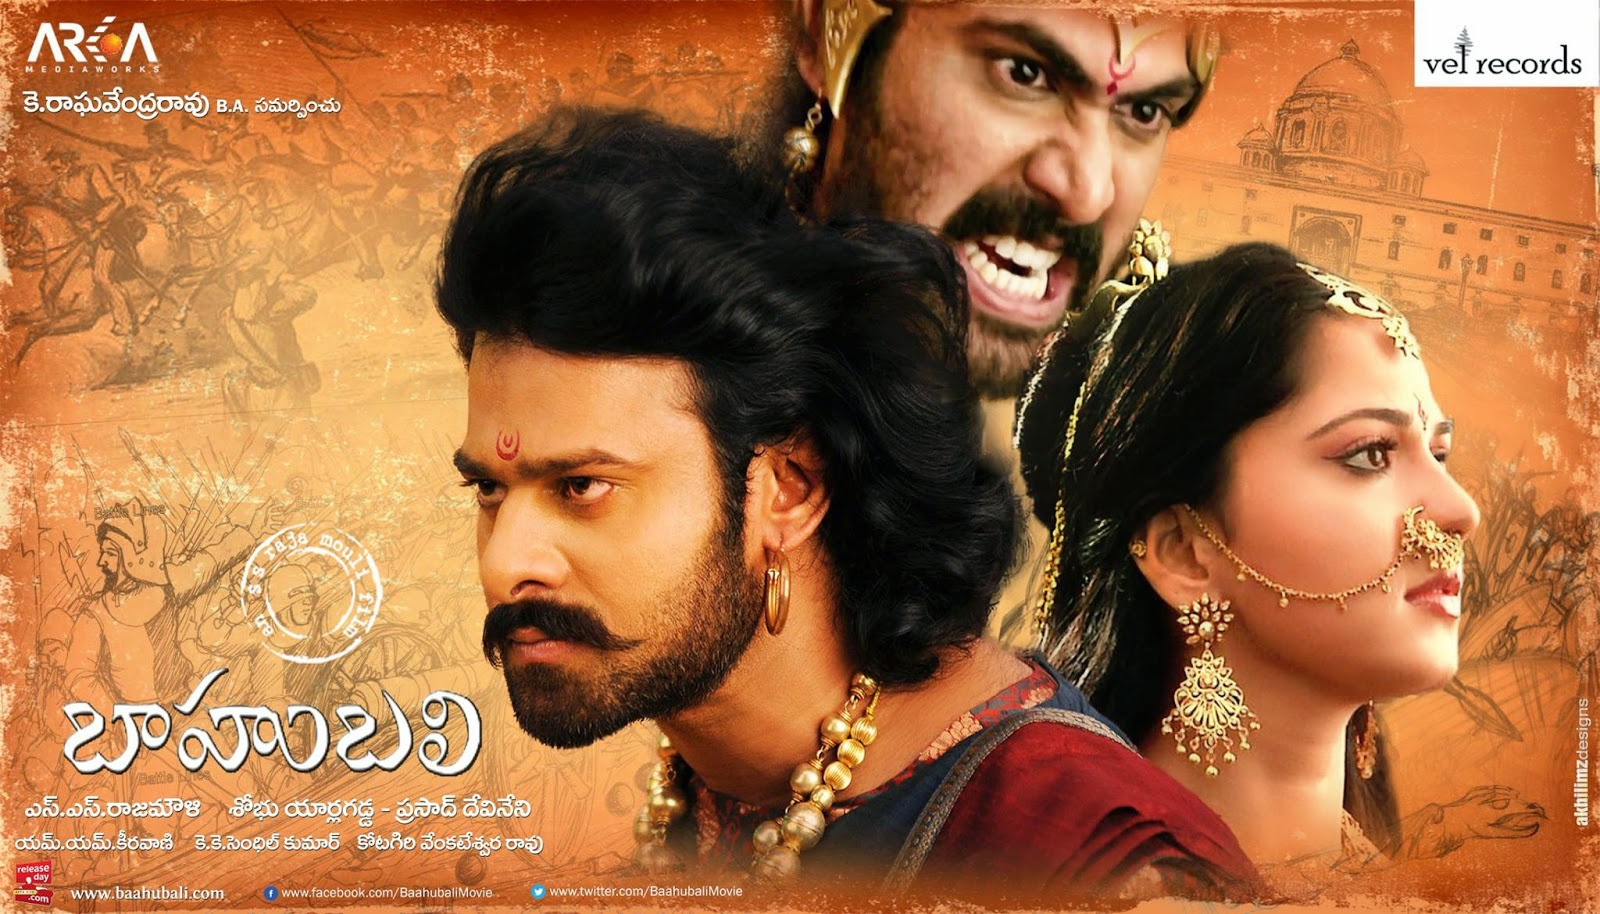 The Epic Bahubali Movie Watch World TV Premier On Sony Set Max Date Time Details